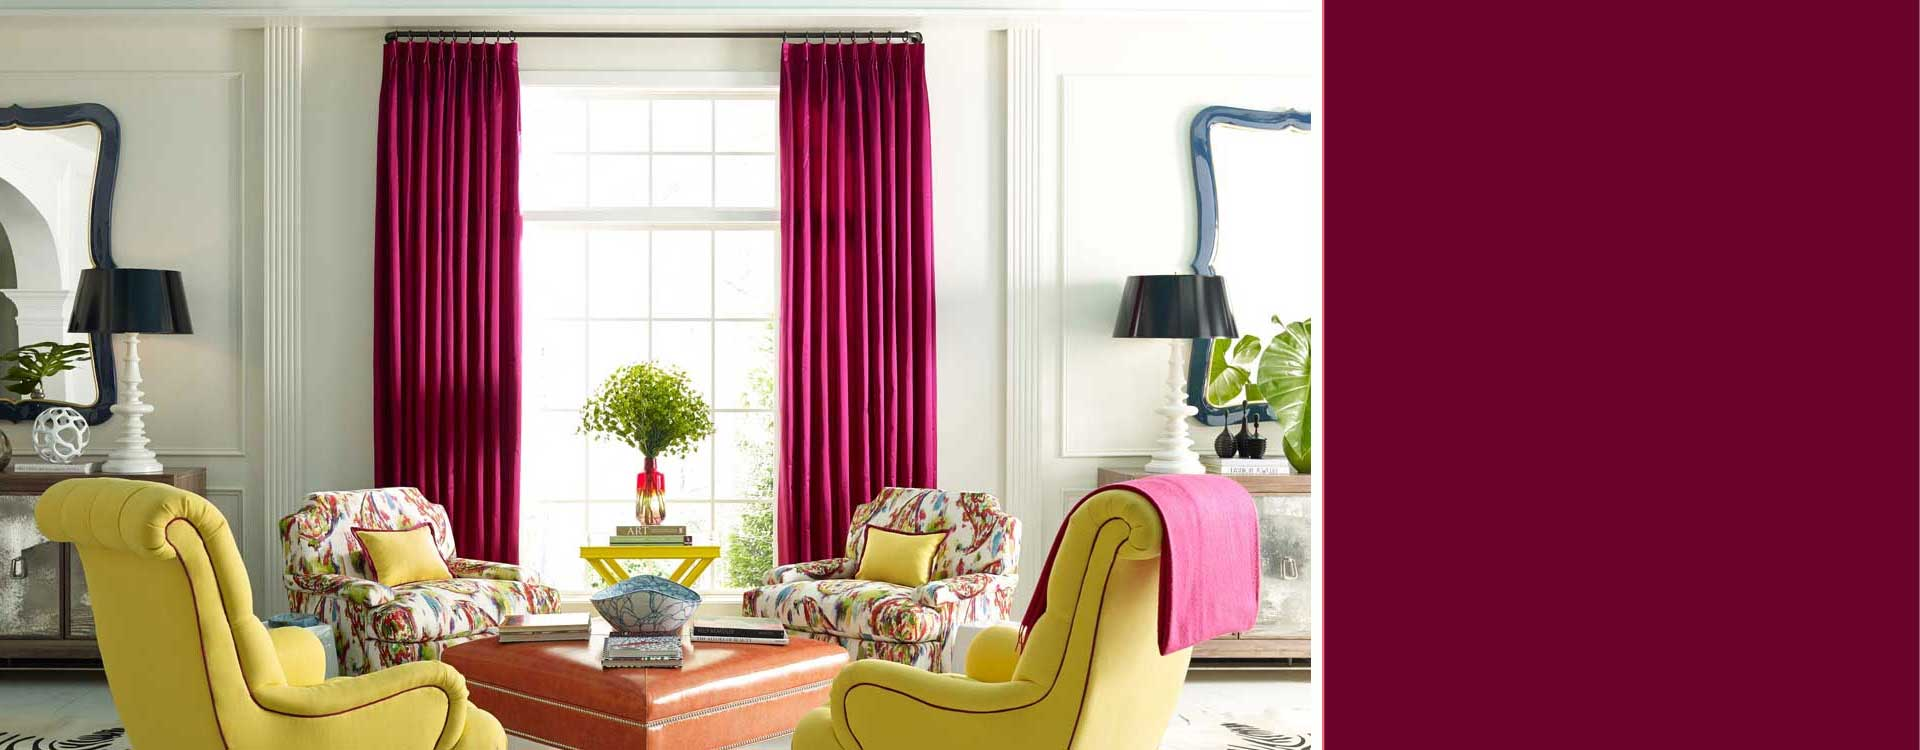 color room blackout in living shade modern ready treatments made curtains home augchicago curtain org drape window from hotel drapes solid garden full